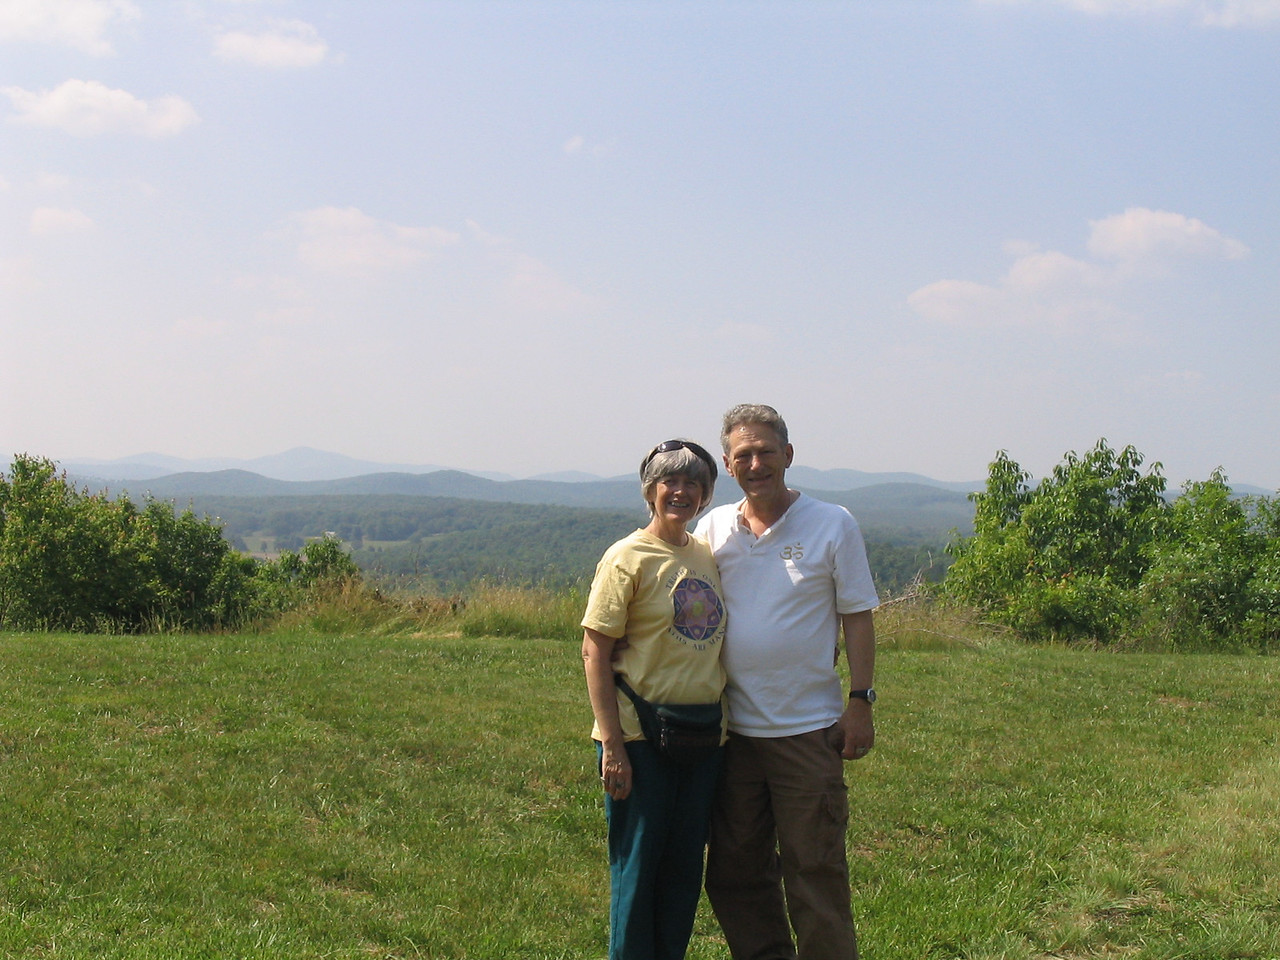 Bonnie and William Osborn with a view of the Blue Ridge Mountains in the background.  May 2006.